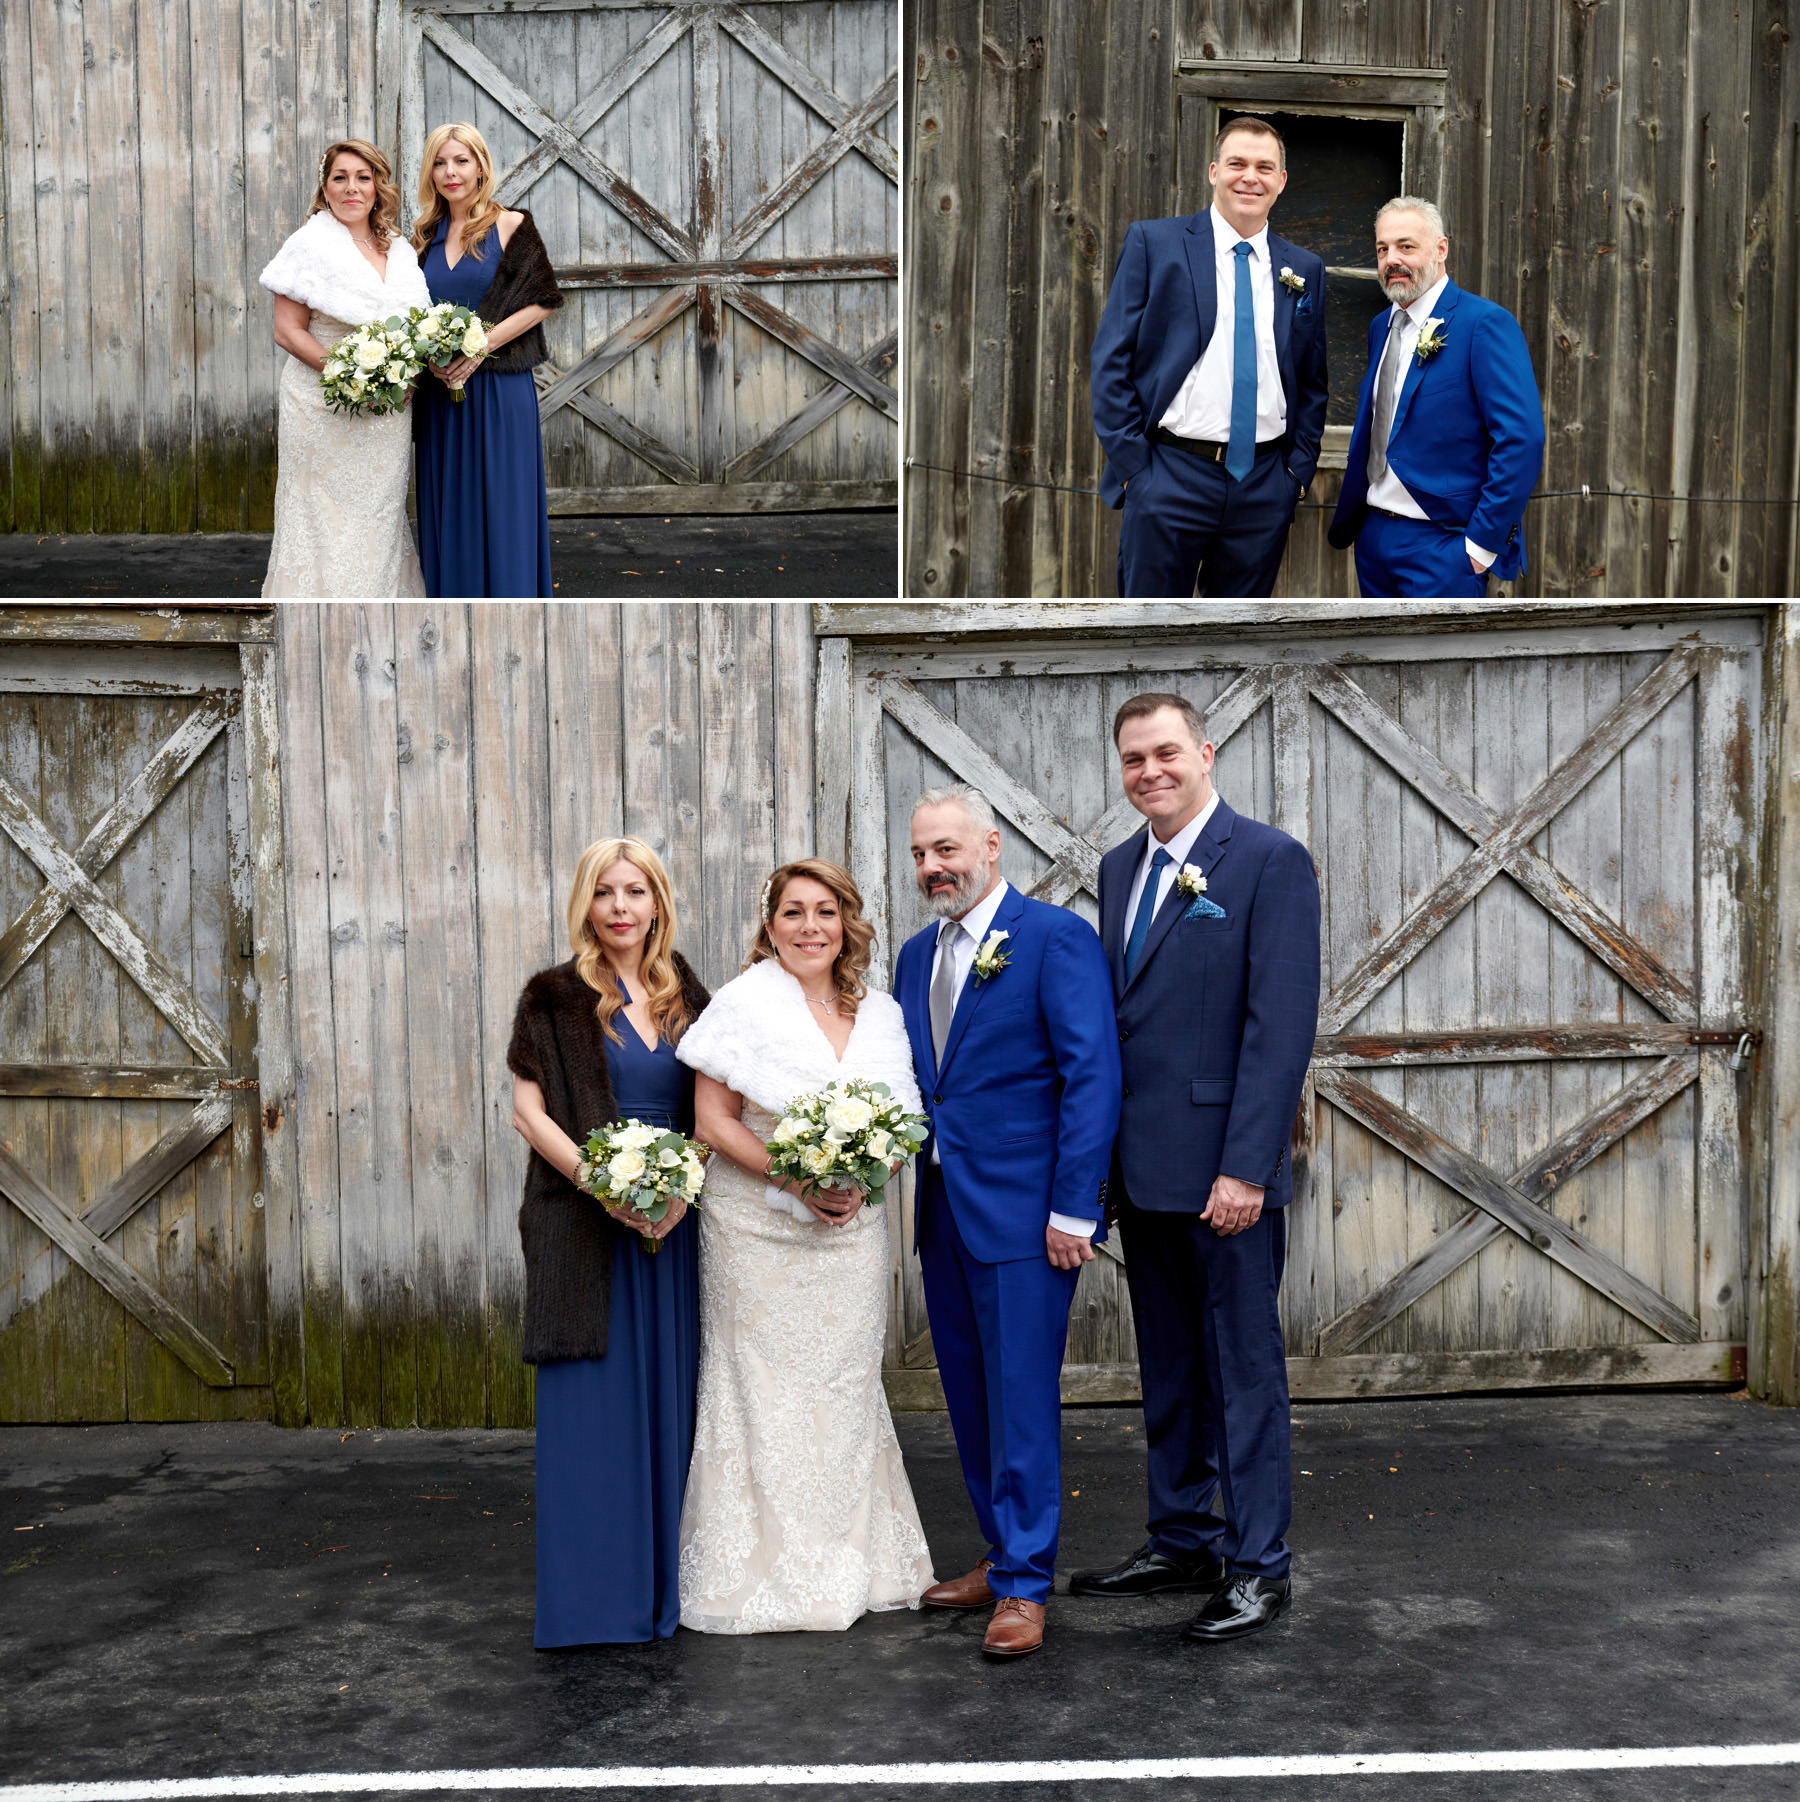 wedding photos at the barn at the bernards inn